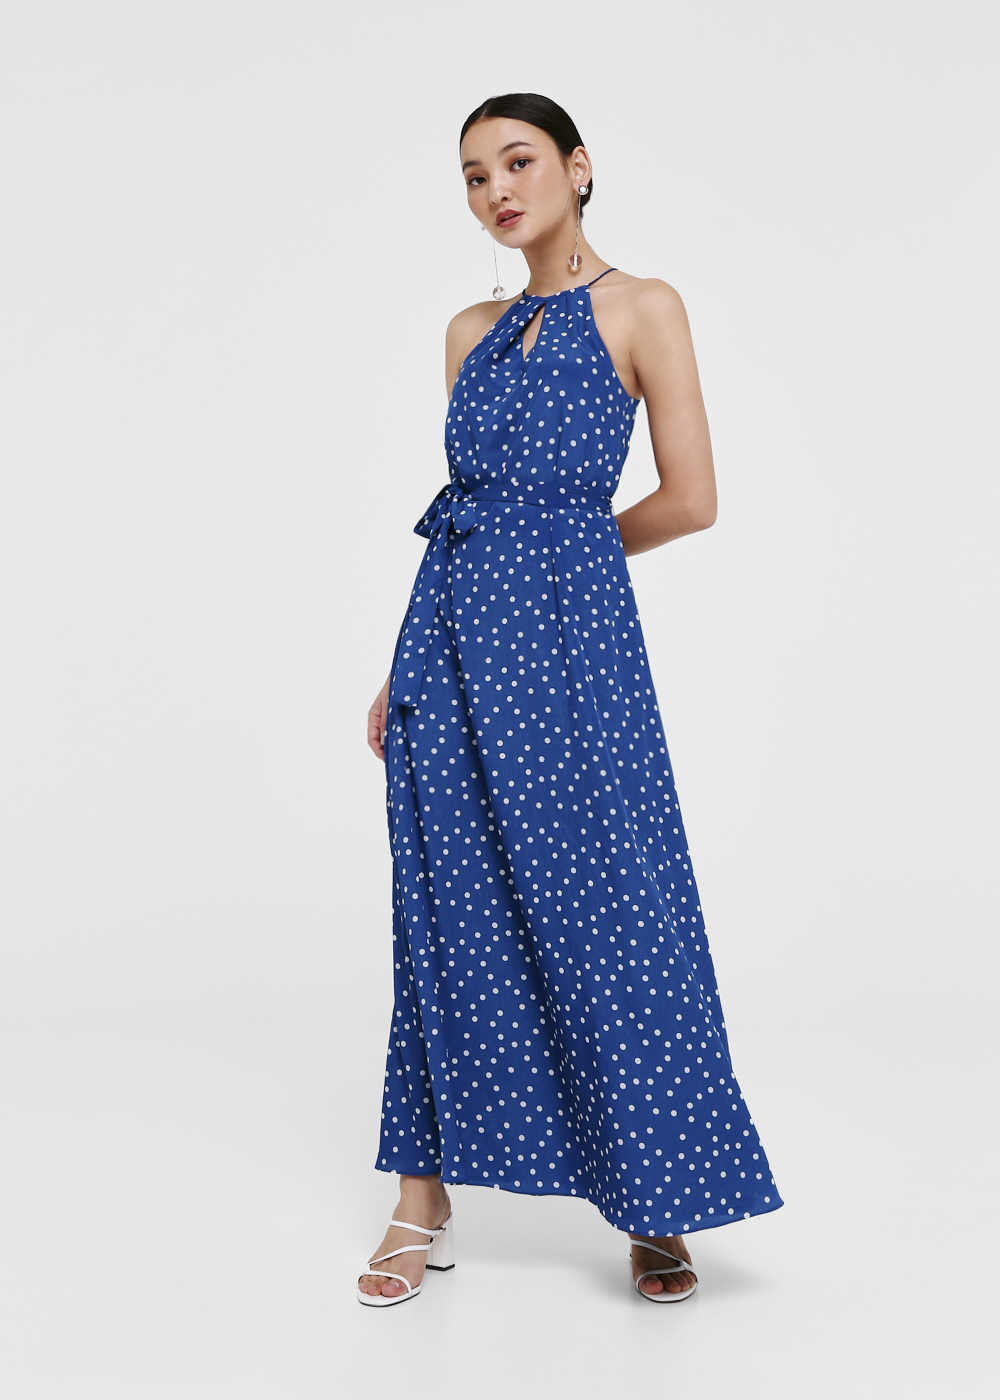 Hadlee Printed Sash Tie Maxi Dress